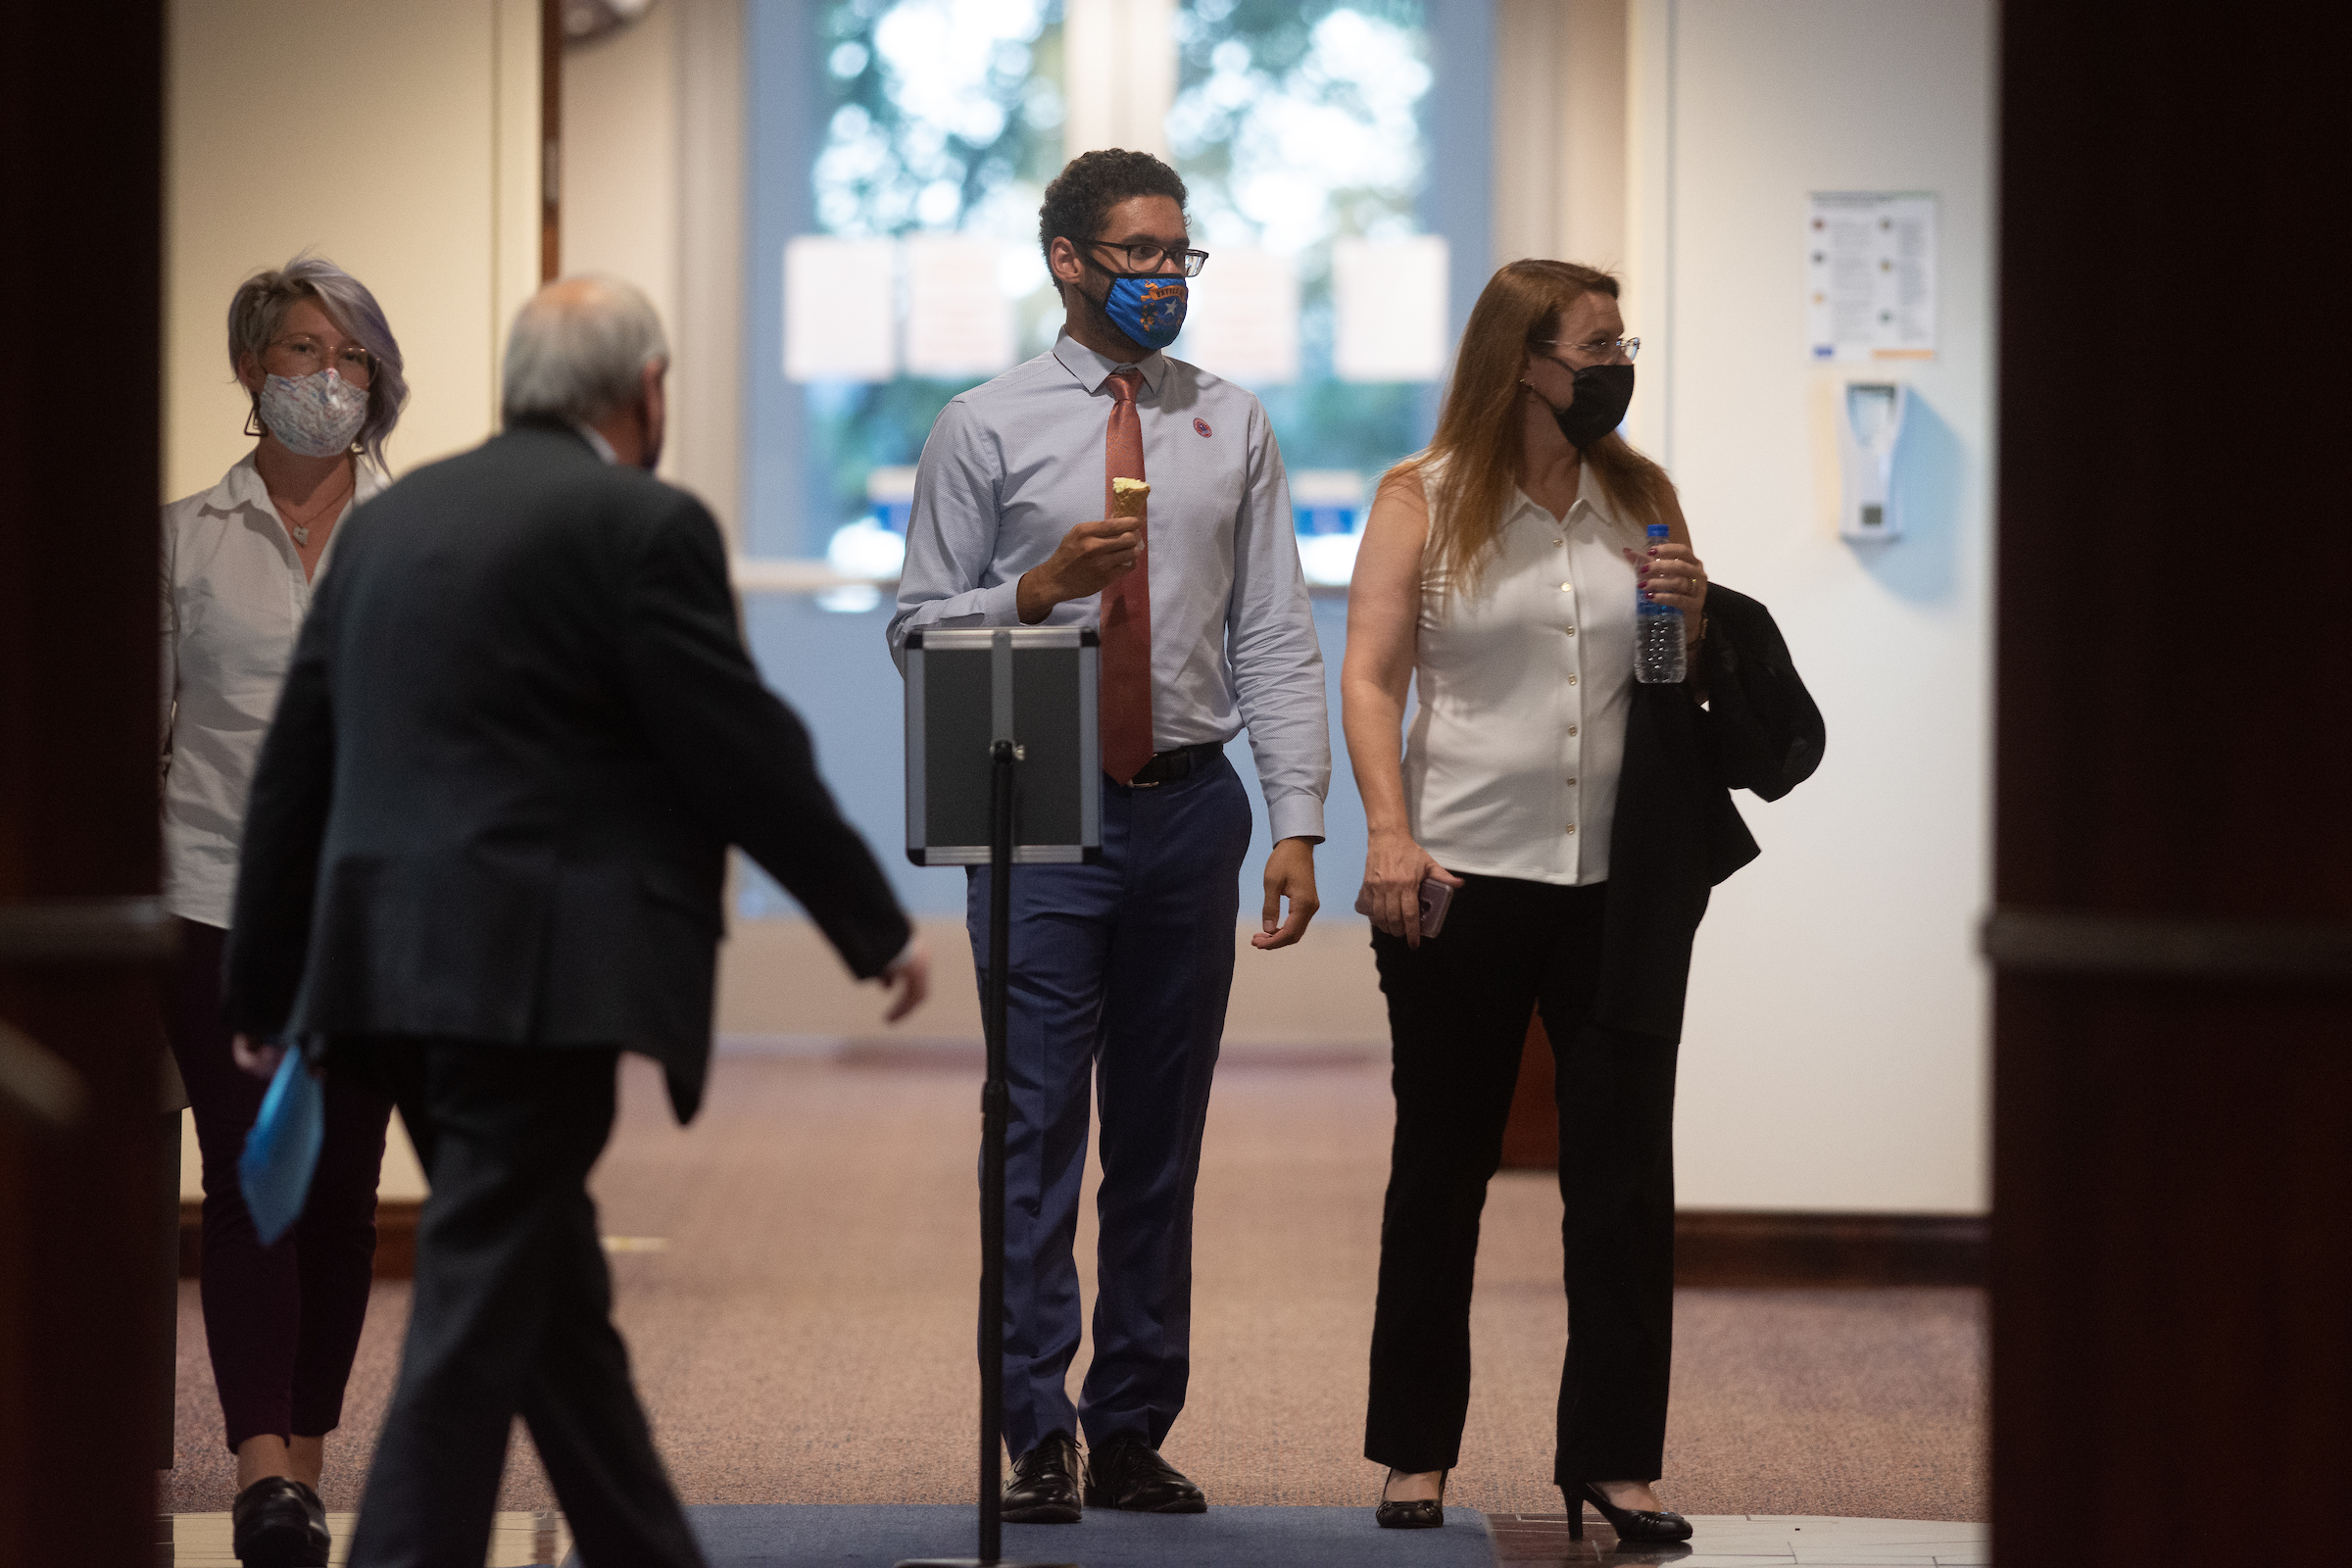 Assembly members Sarah Peters, Howard Watts II and Michelle Gorelow walking in a hallway in the Legislature Building